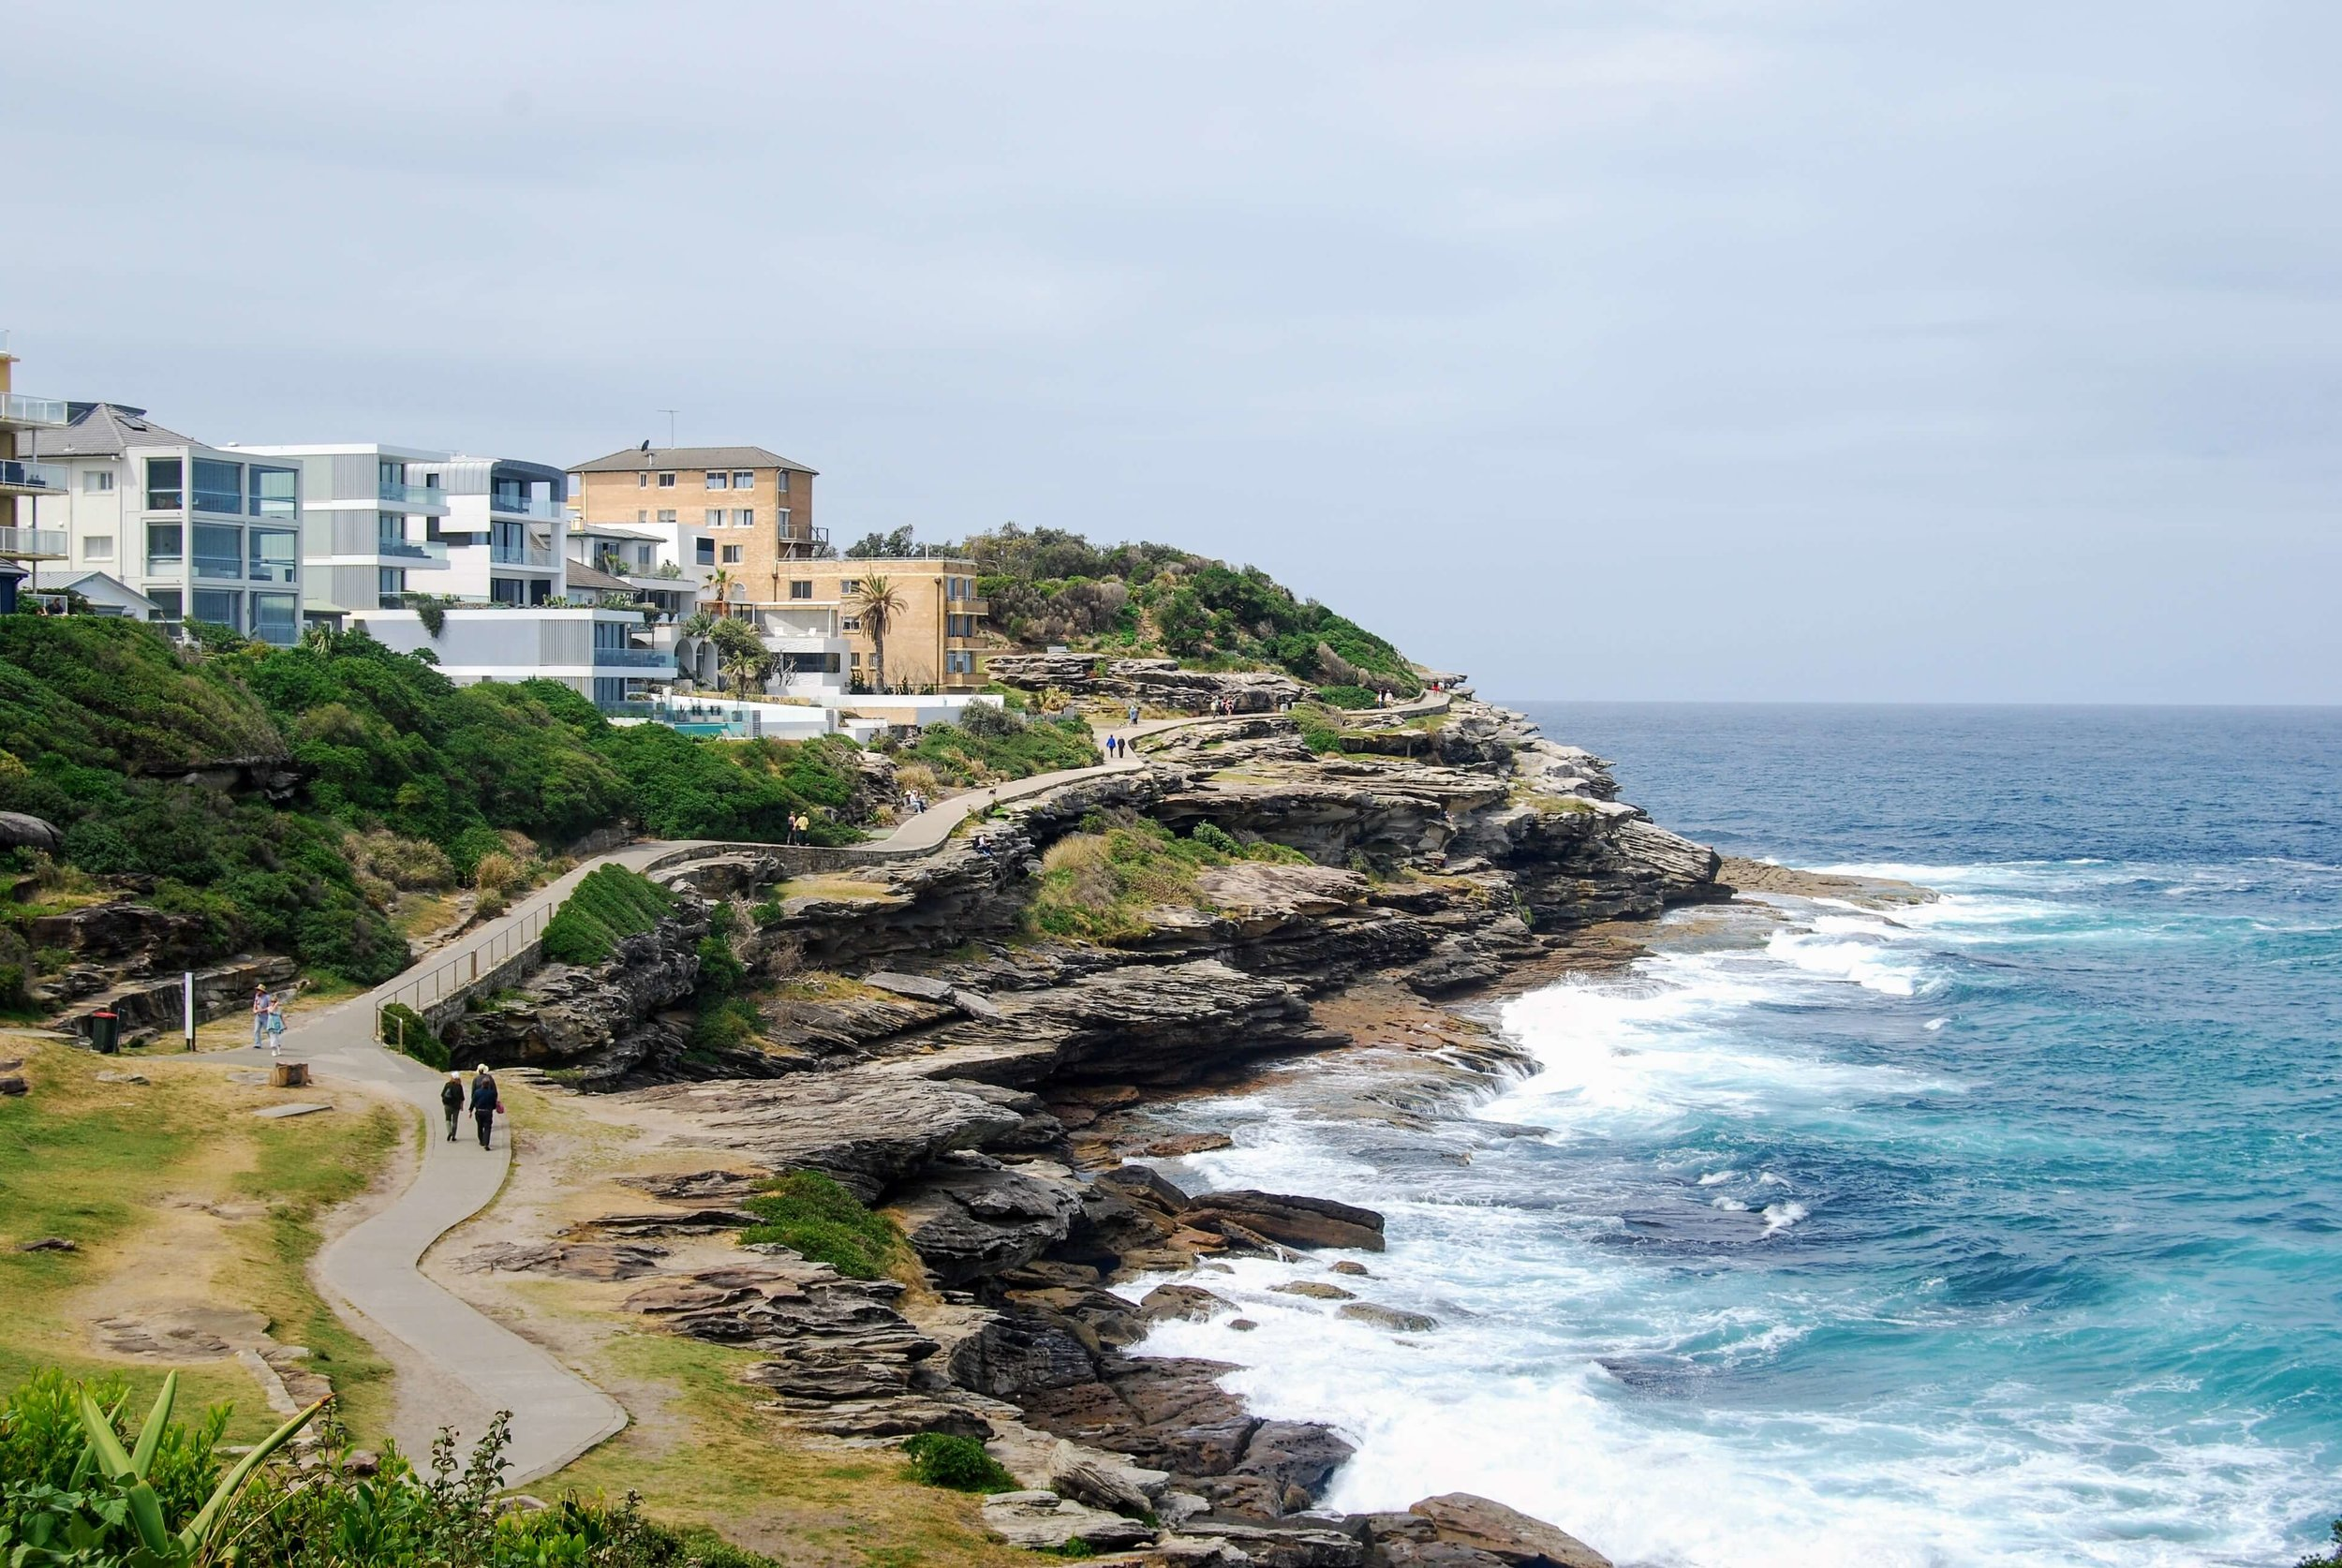 The coastal walk from Coogee to Bondi has some pretty good scenery, no?